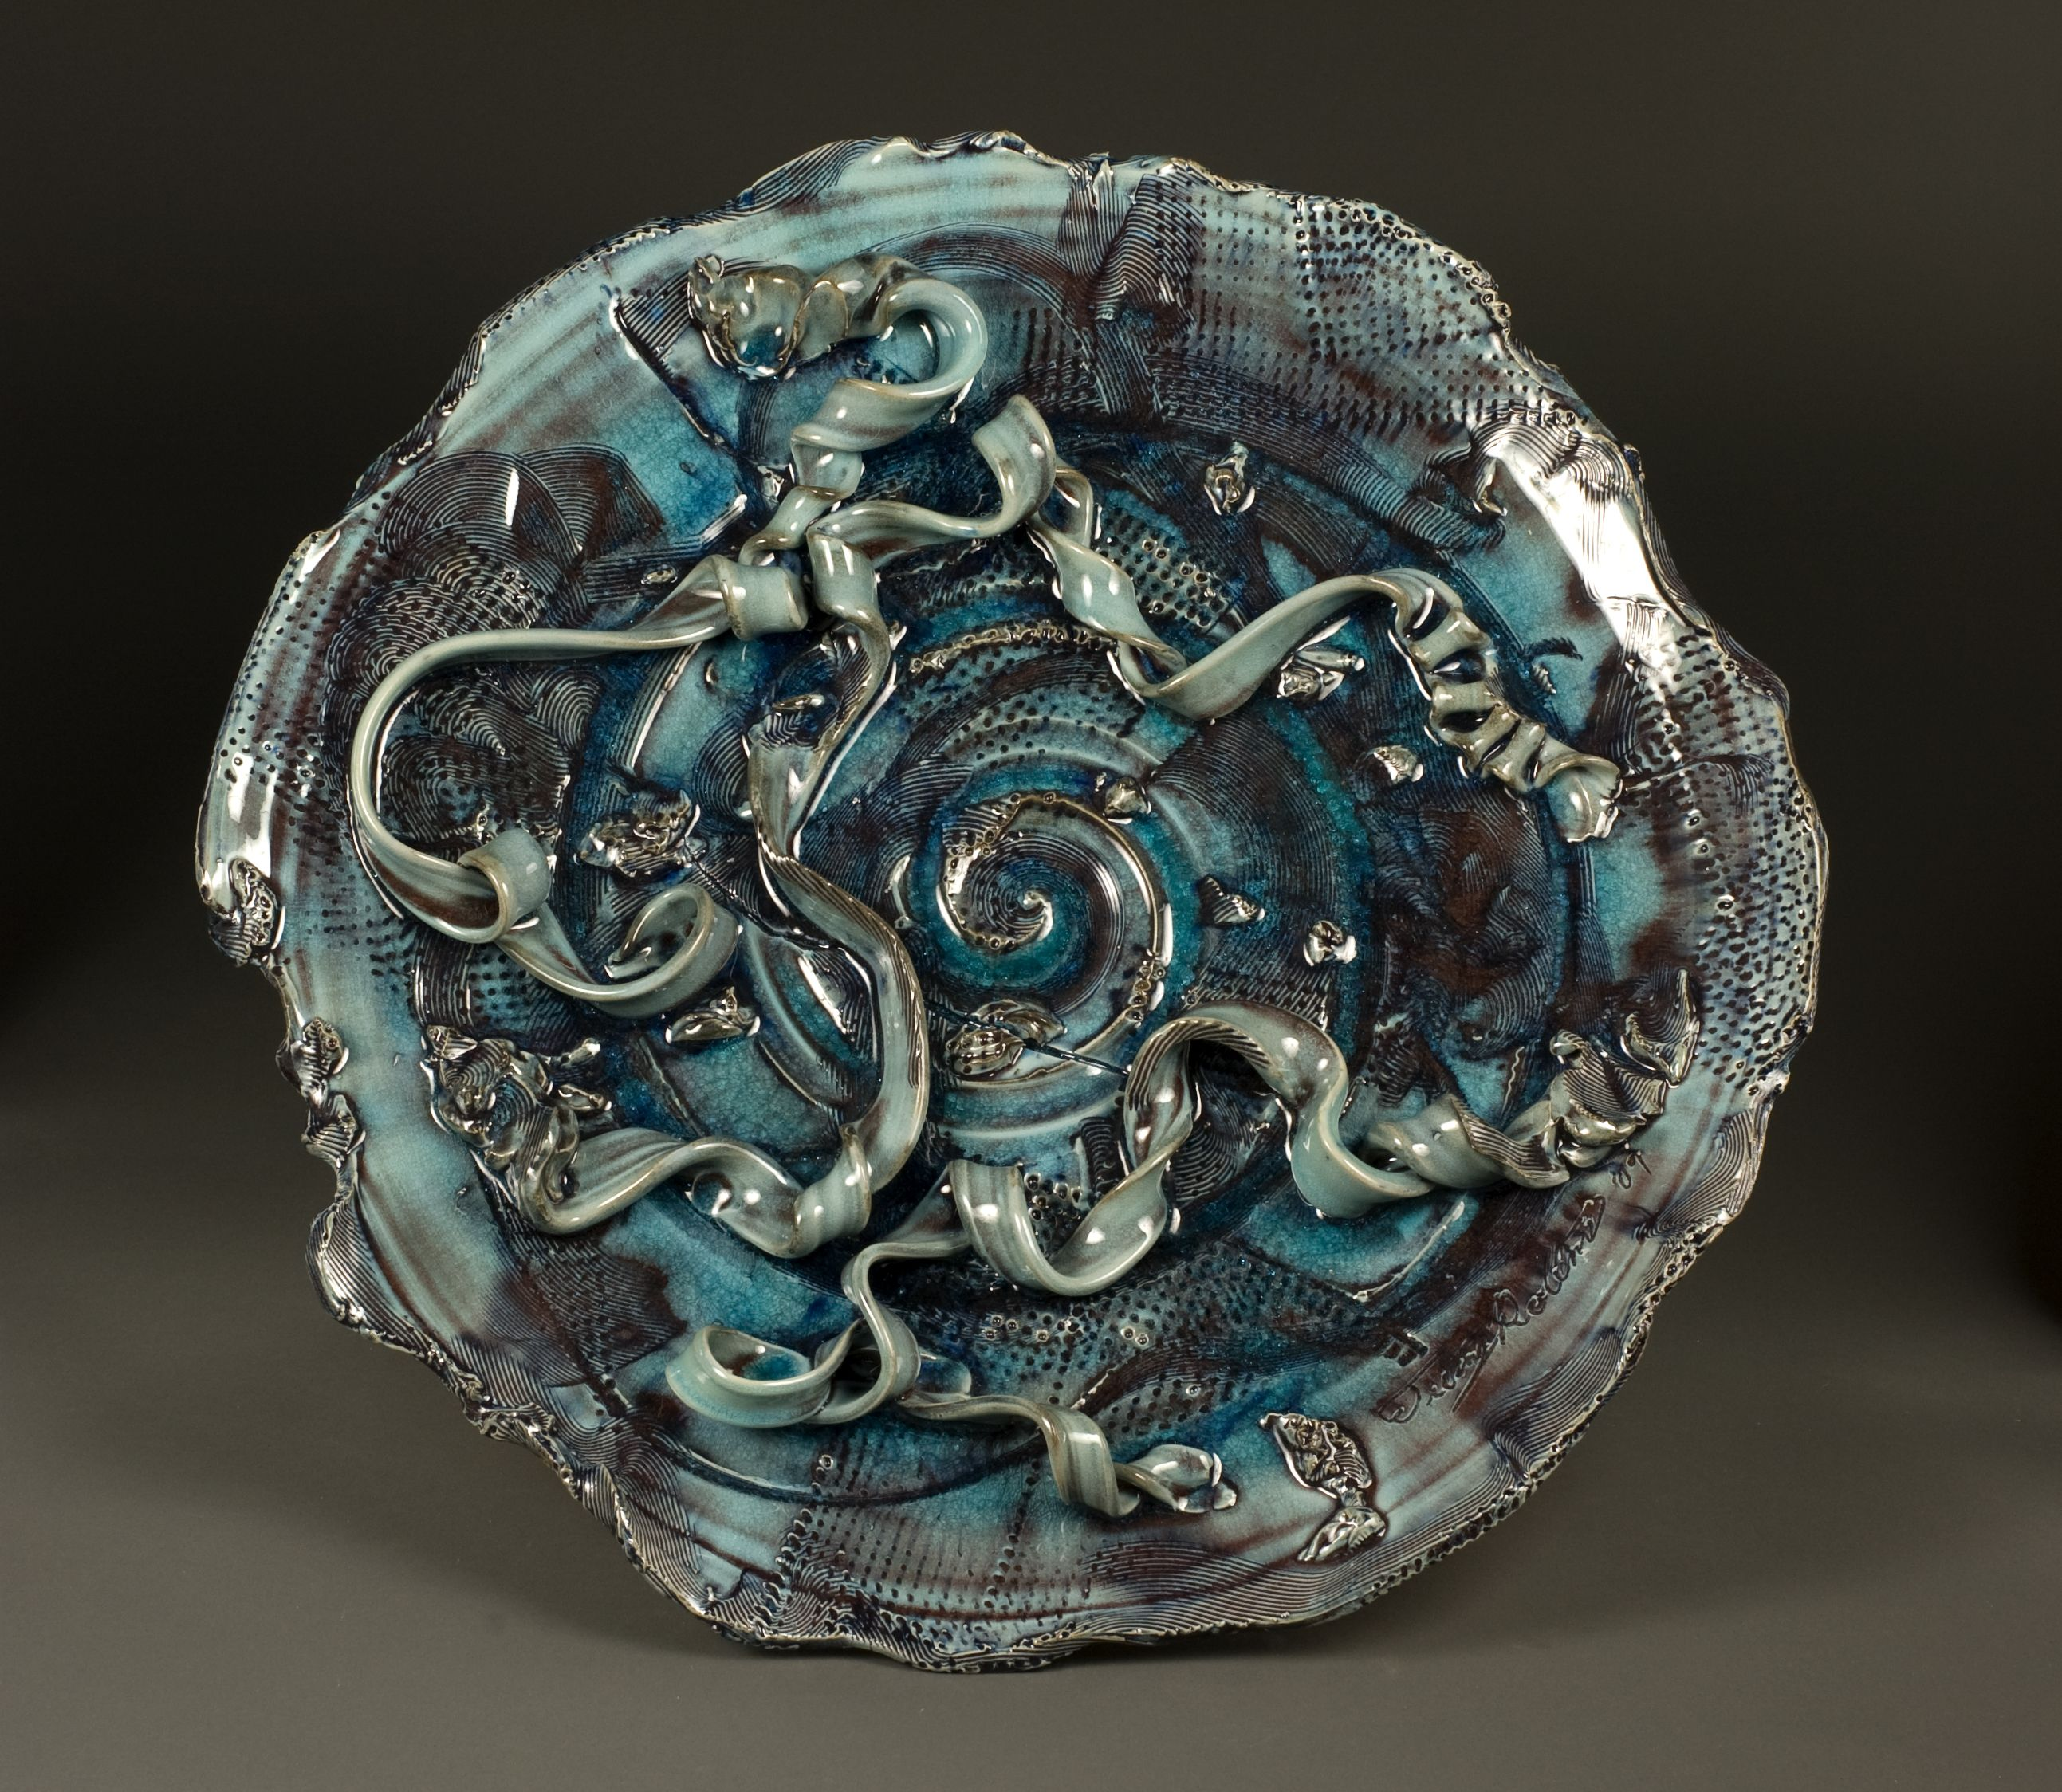 Artist Tierney Rollins Platter 22 By 3 High Fired Gas Reduction White Stomeware Decorative Wall Platter Artsintheheart Pottery